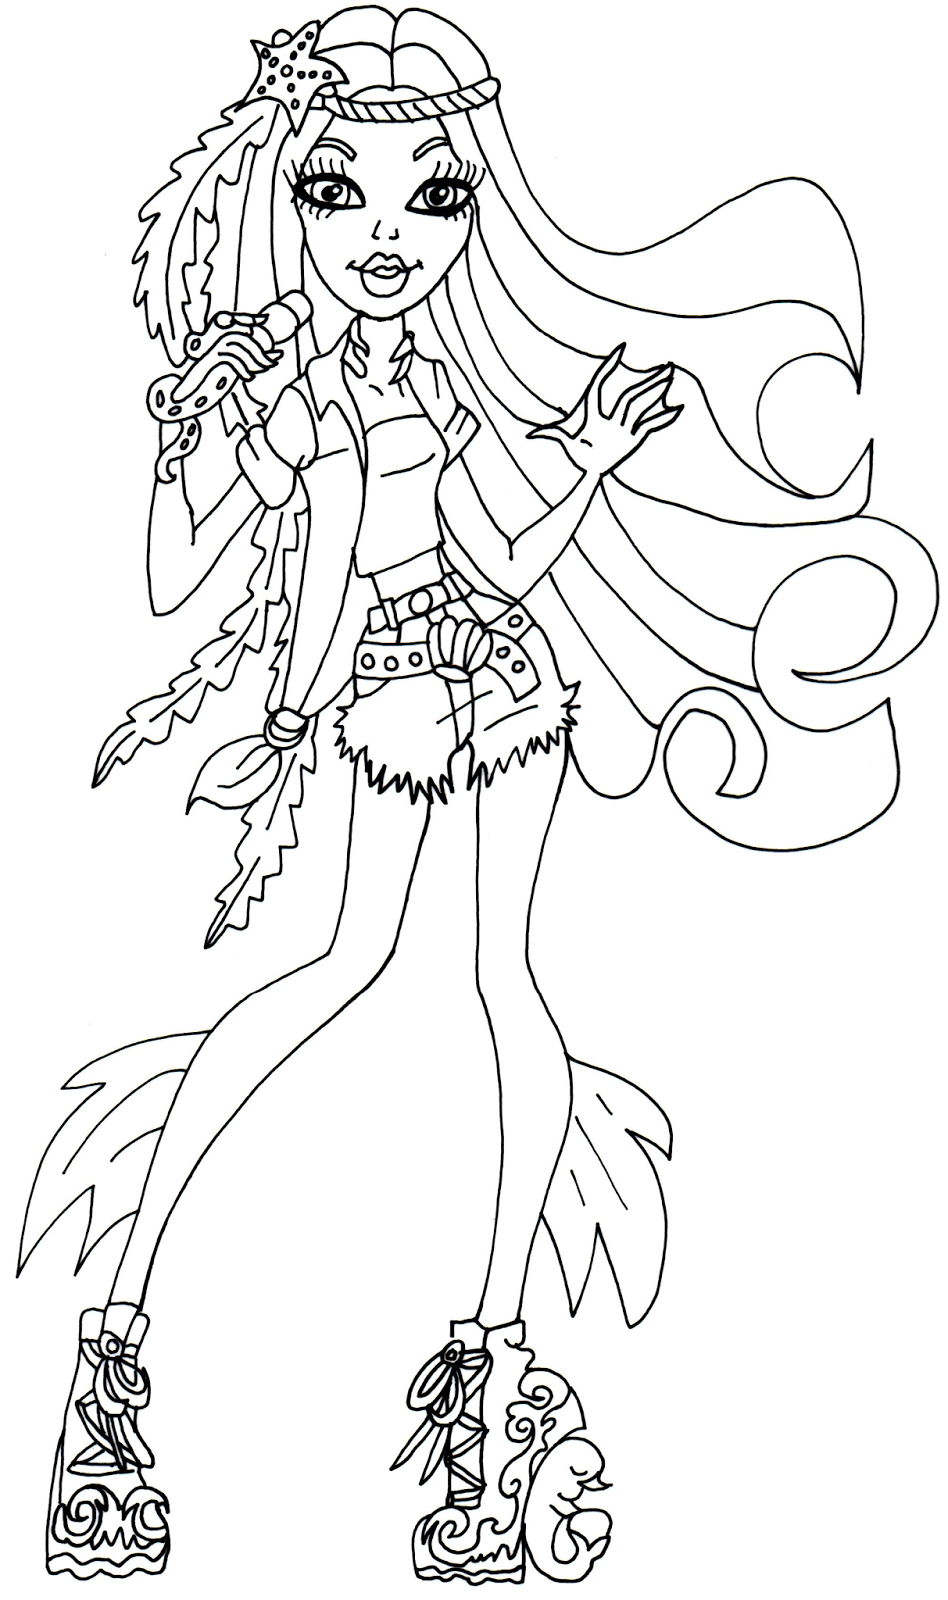 Free Printable Monster High Coloring Page For Madison Fear | Color - Monster High Free Printable Pictures